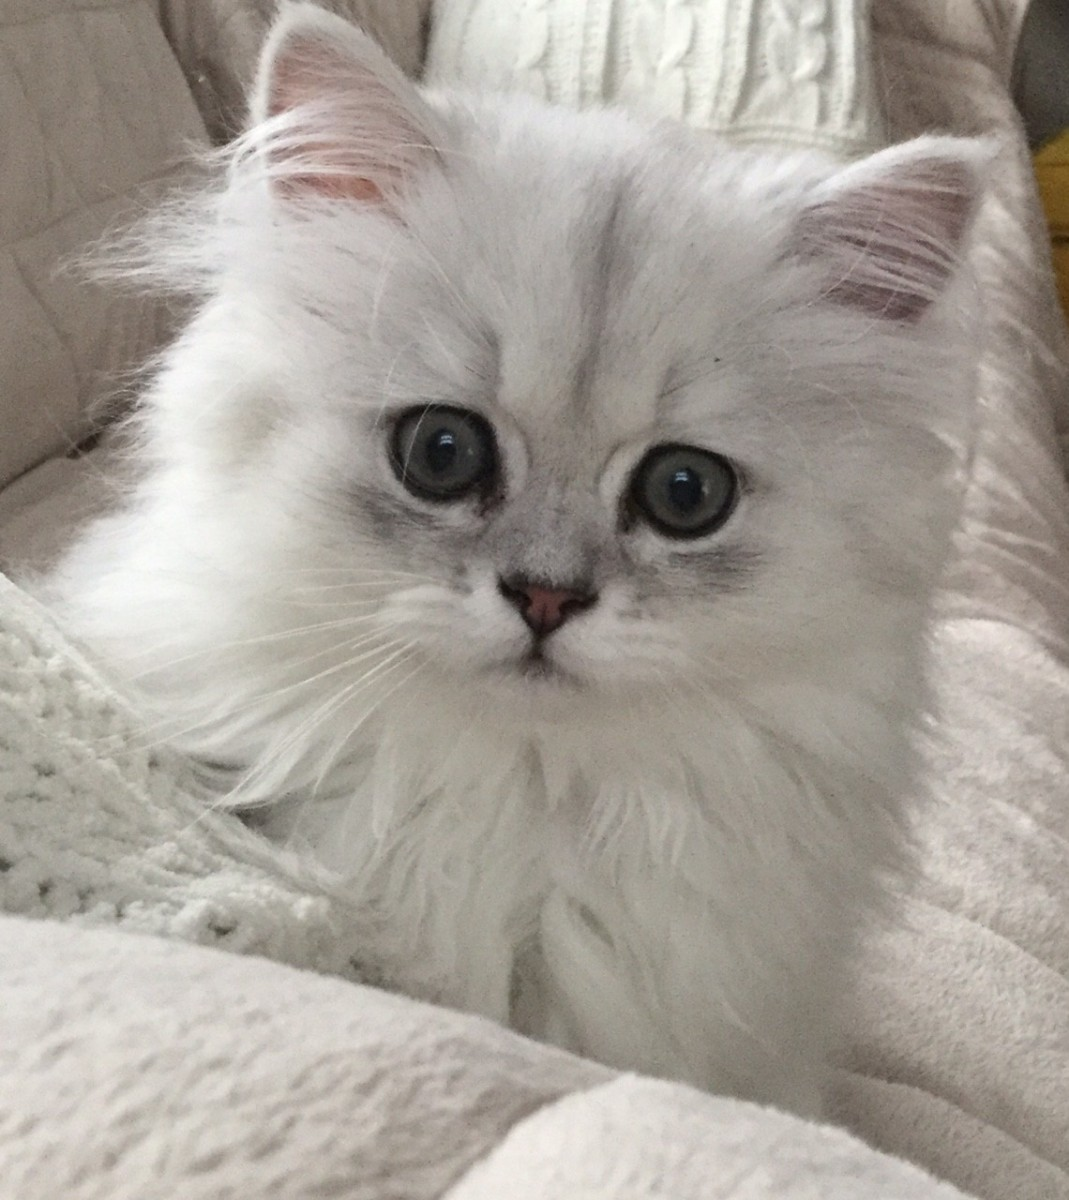 Chinchilla For Sale >> Persian Cats For Sale | Hershey, PA #218282 | Petzlover